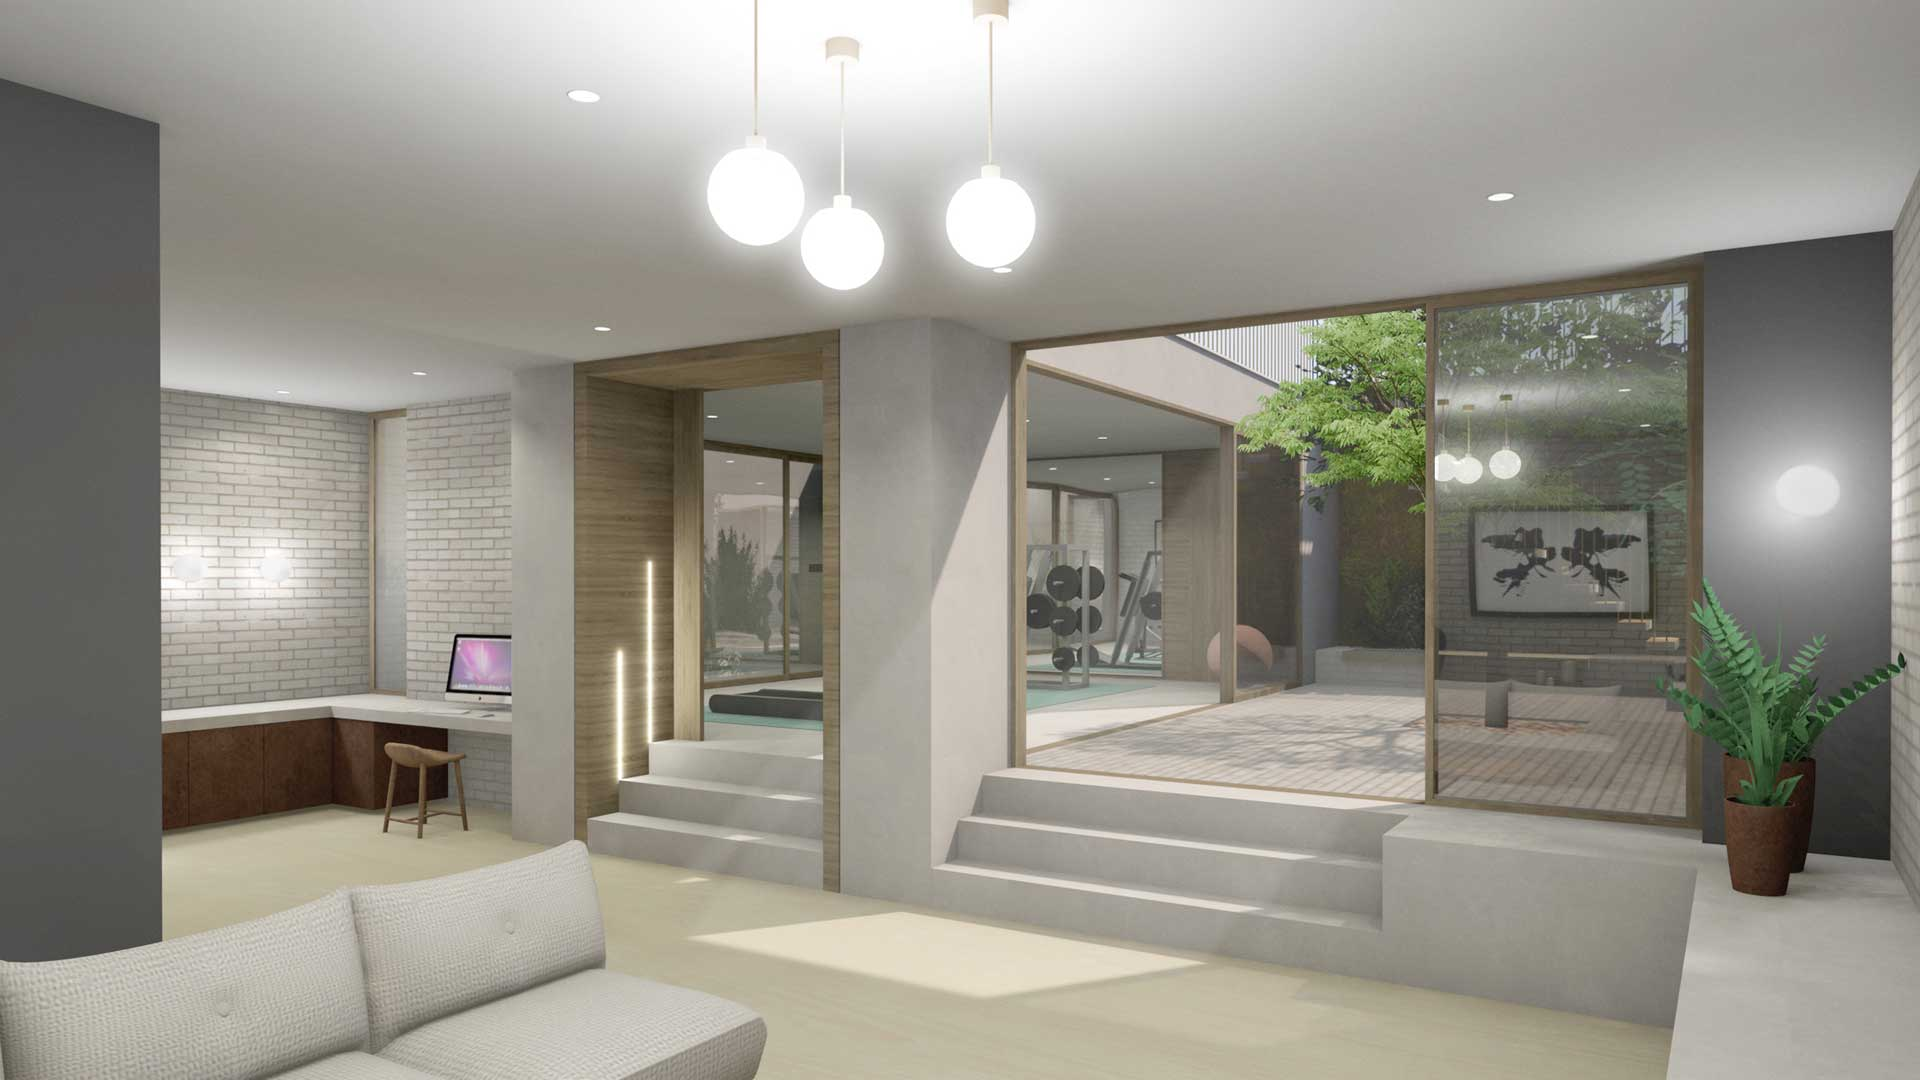 Routh Road Wandsworth Basement Extension 01